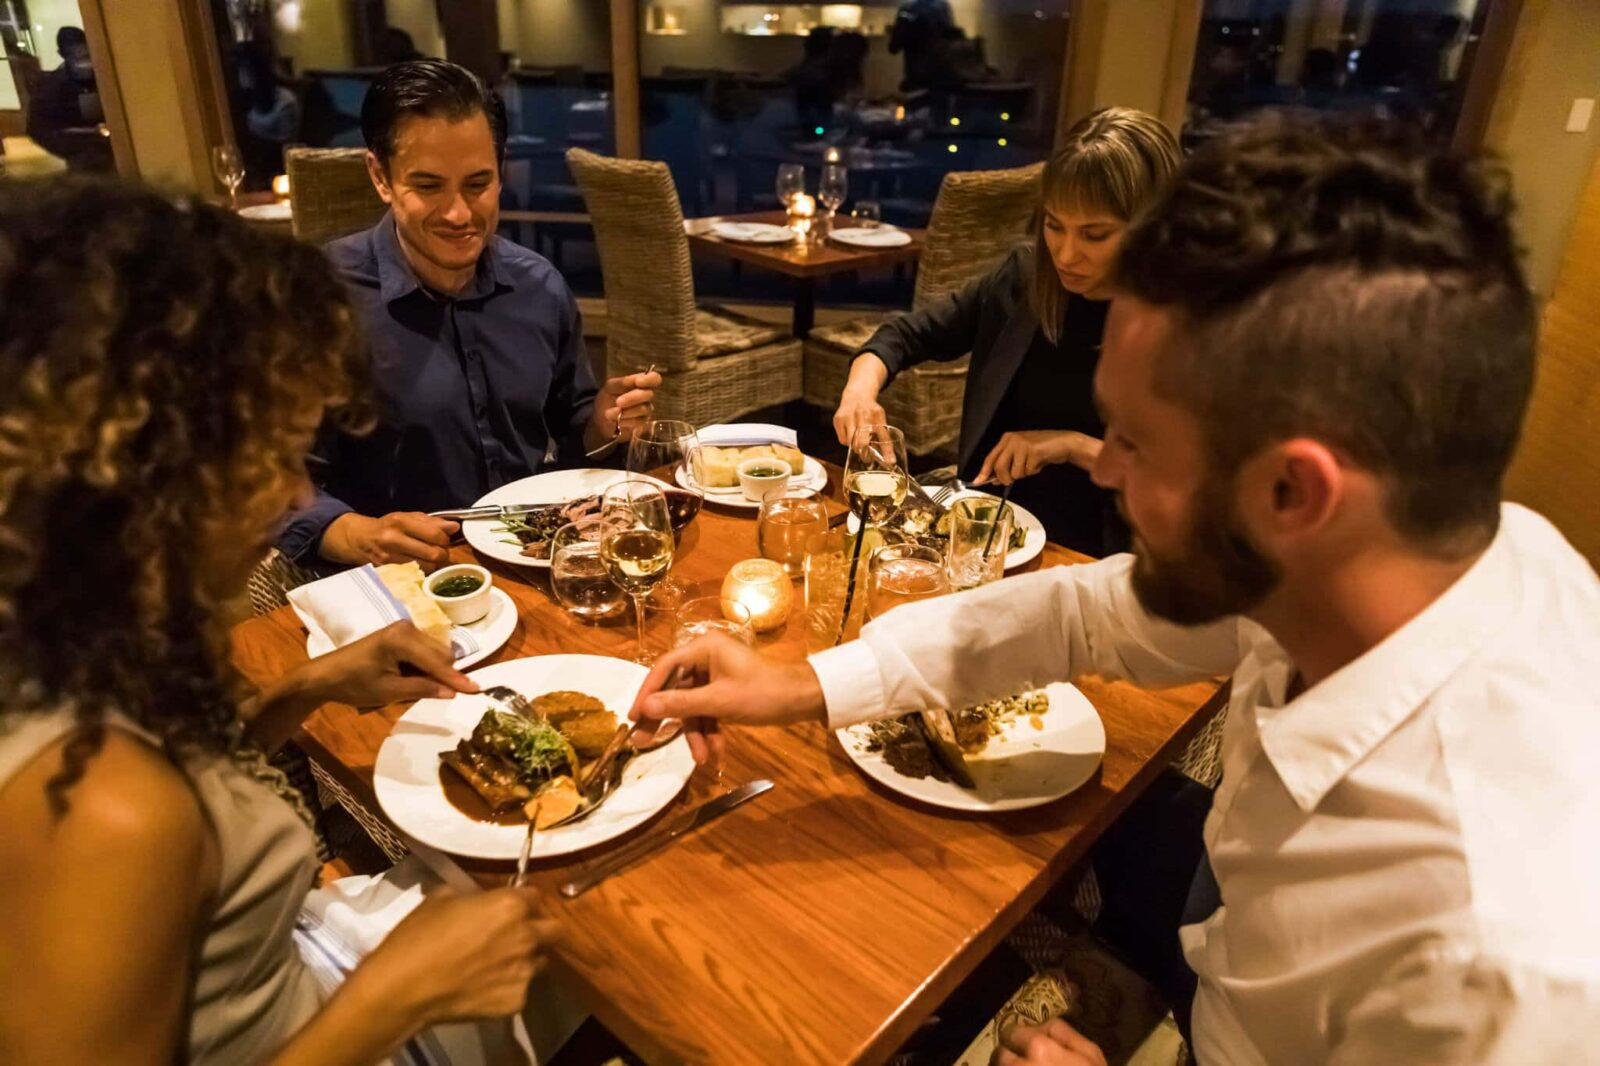 Dine at the Drumheller's Food and Drink and savor the local flavors!